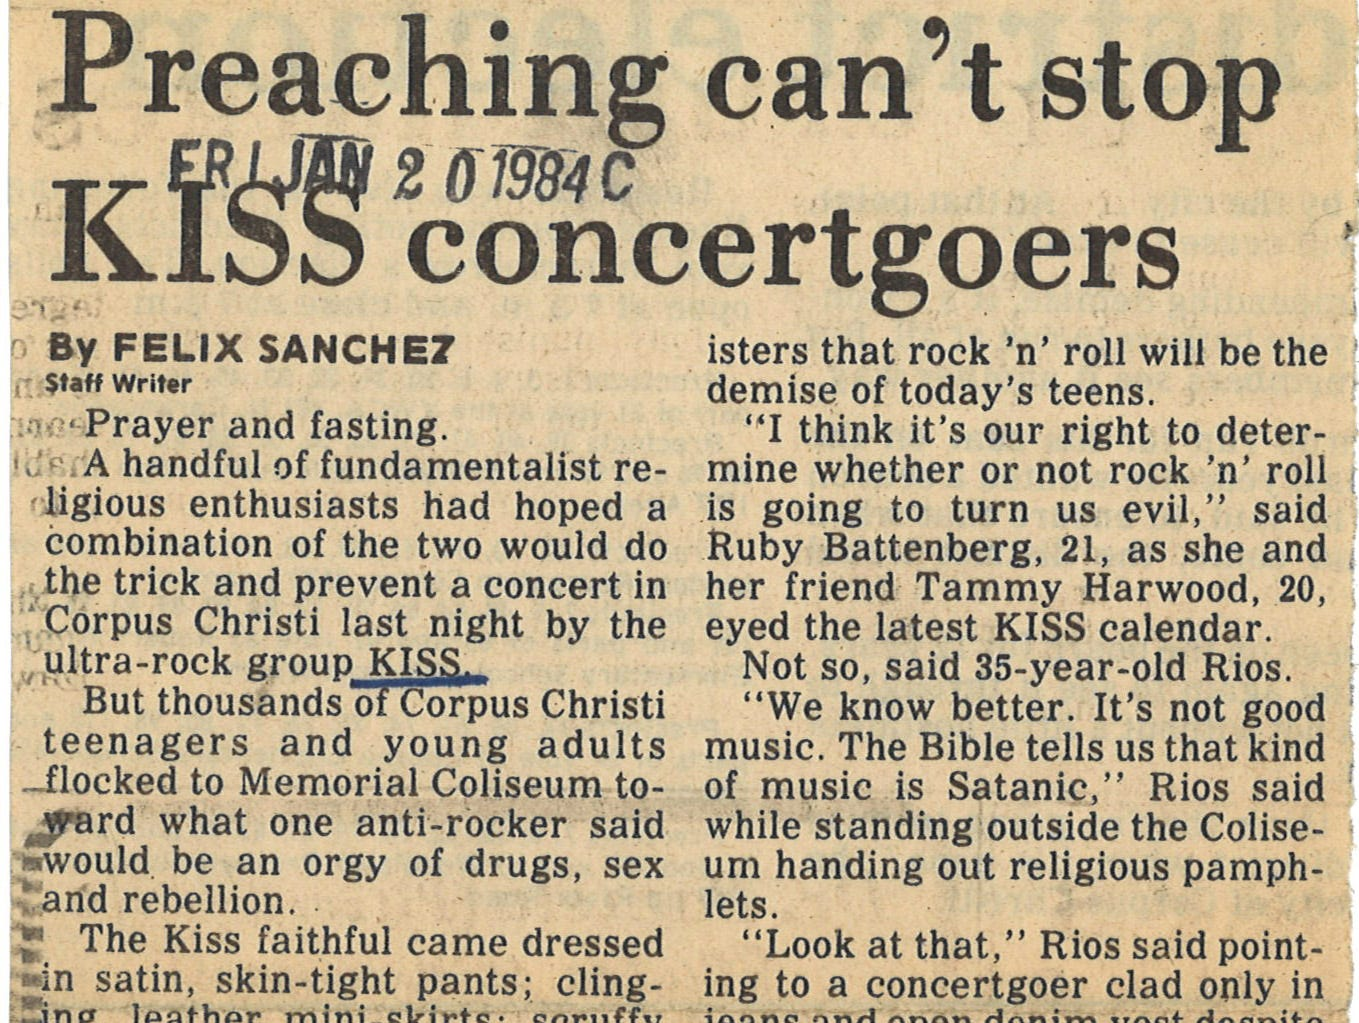 An article from the Jan. 20, 1984 Caller-Times about KISS concert protests.